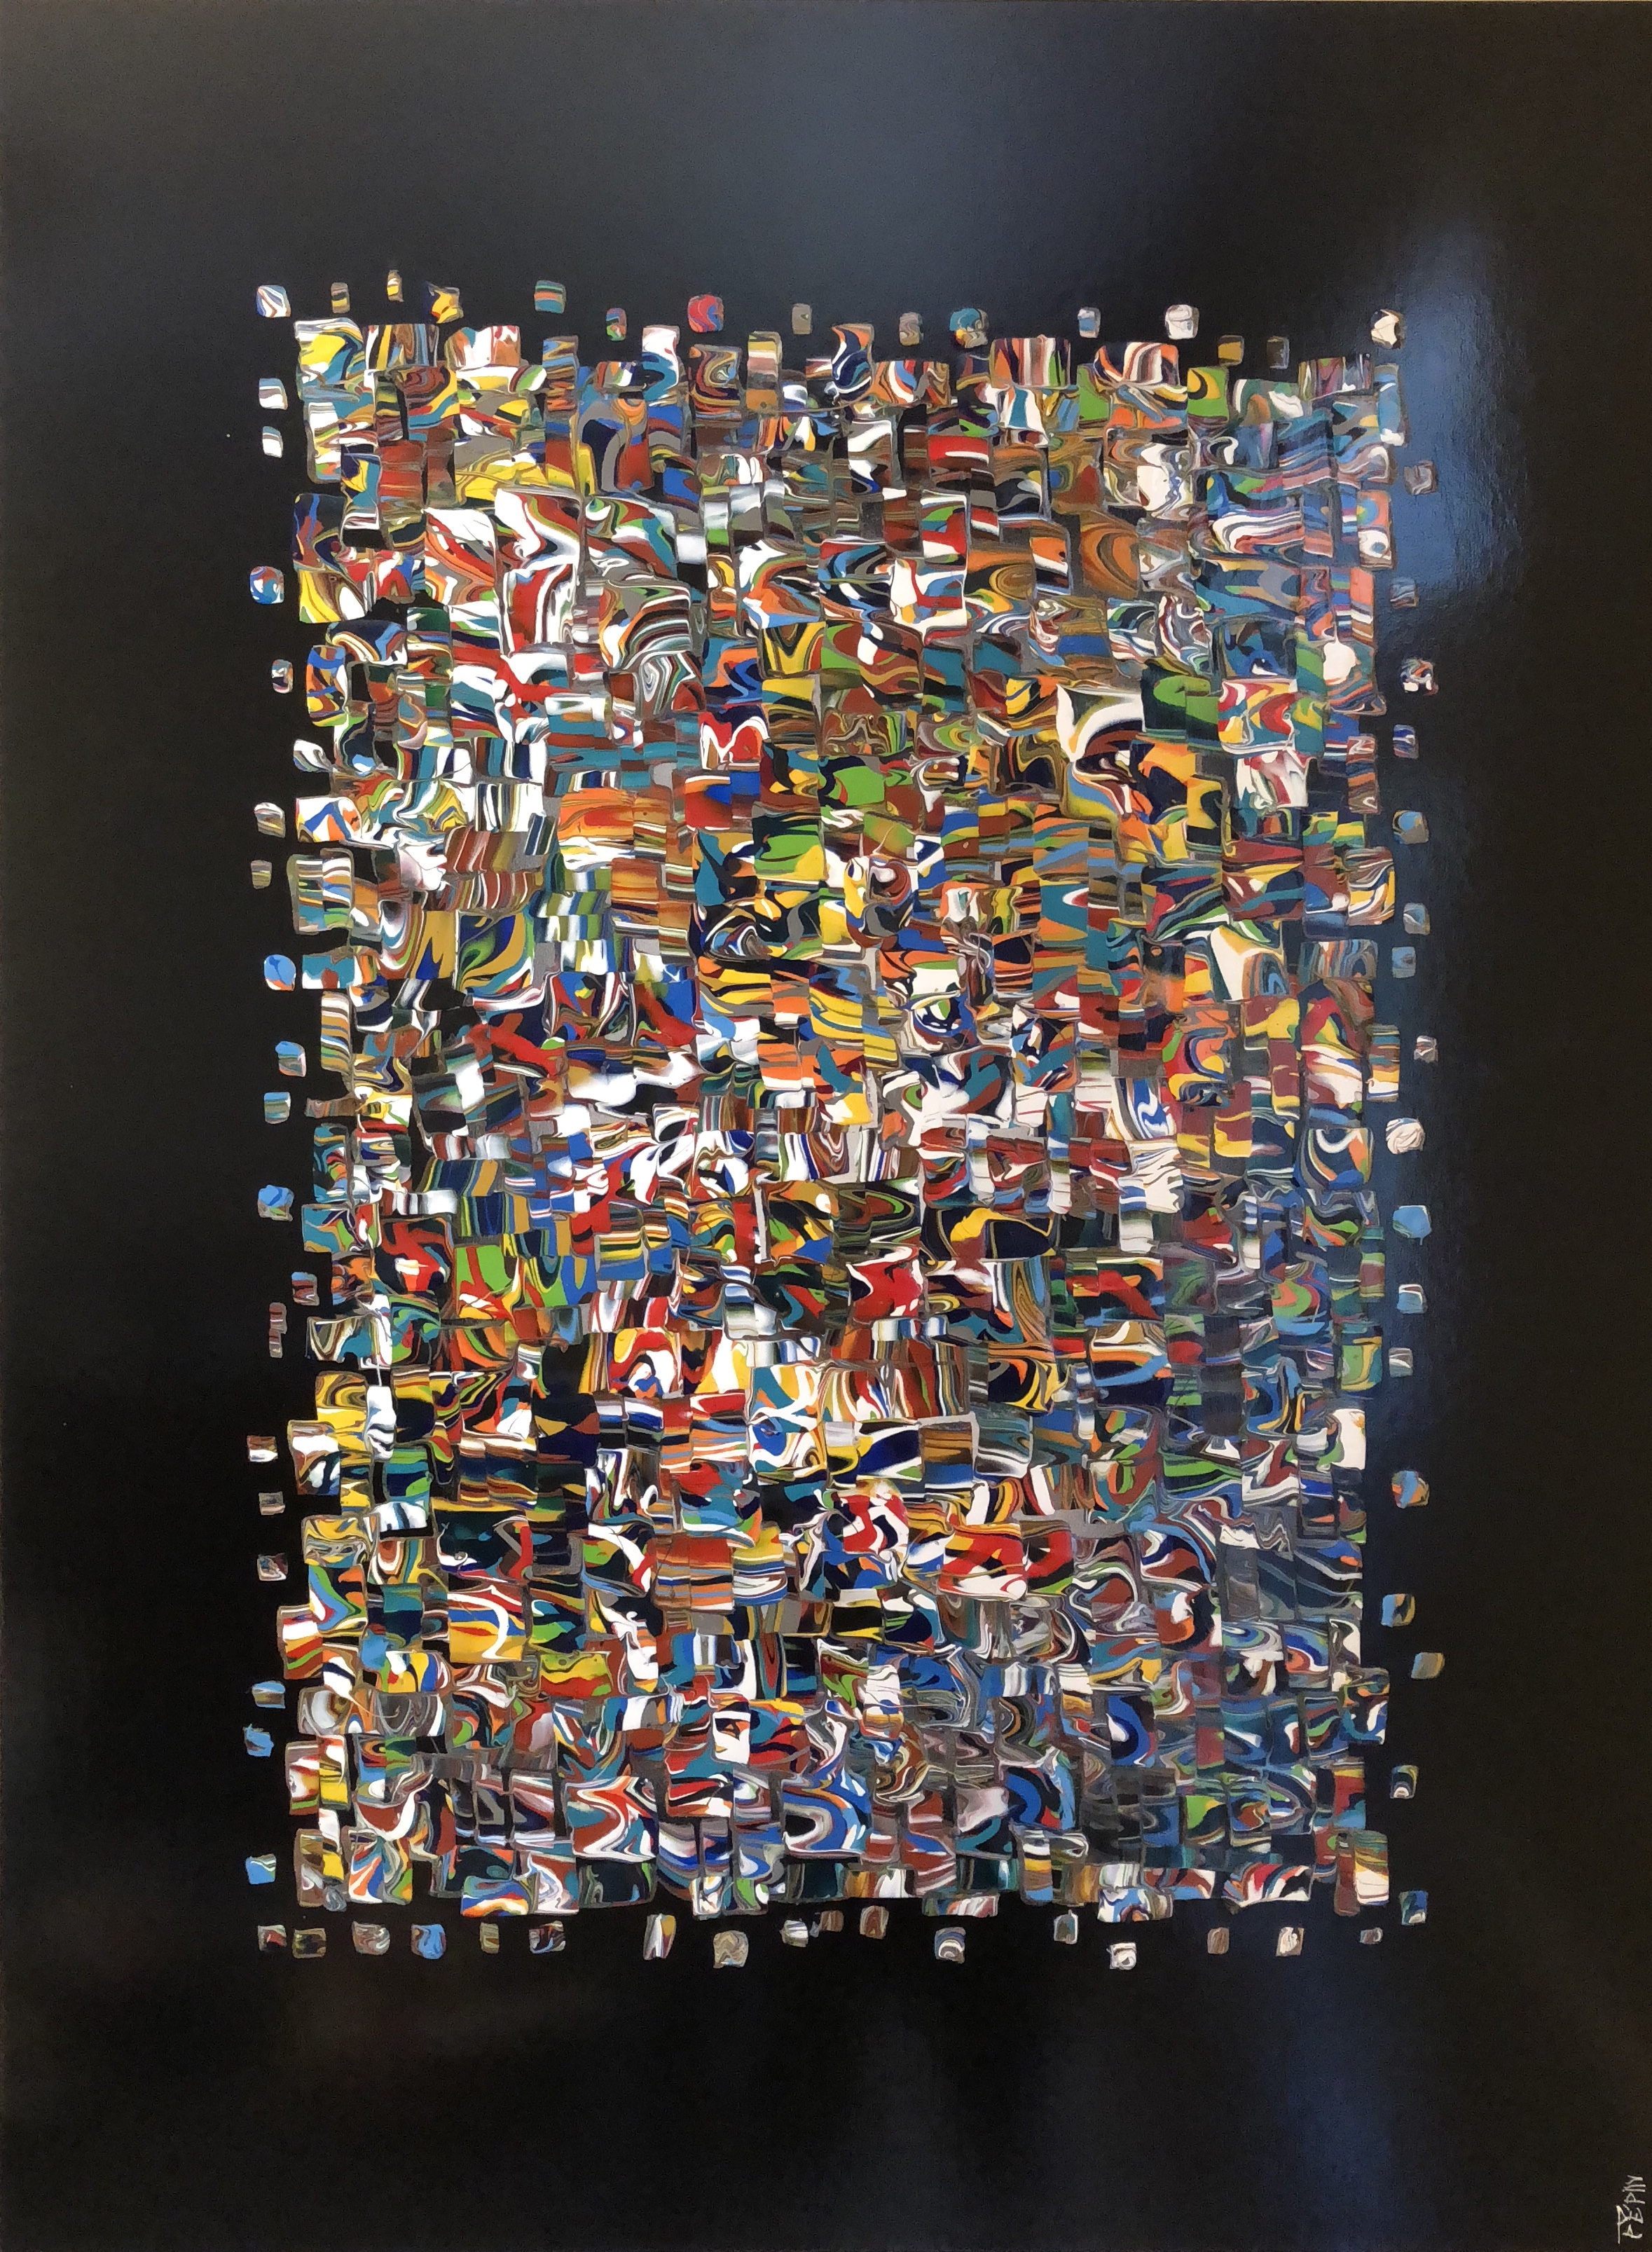 Code 9 artwork by Patrick Pepin - art listed for sale on Artplode